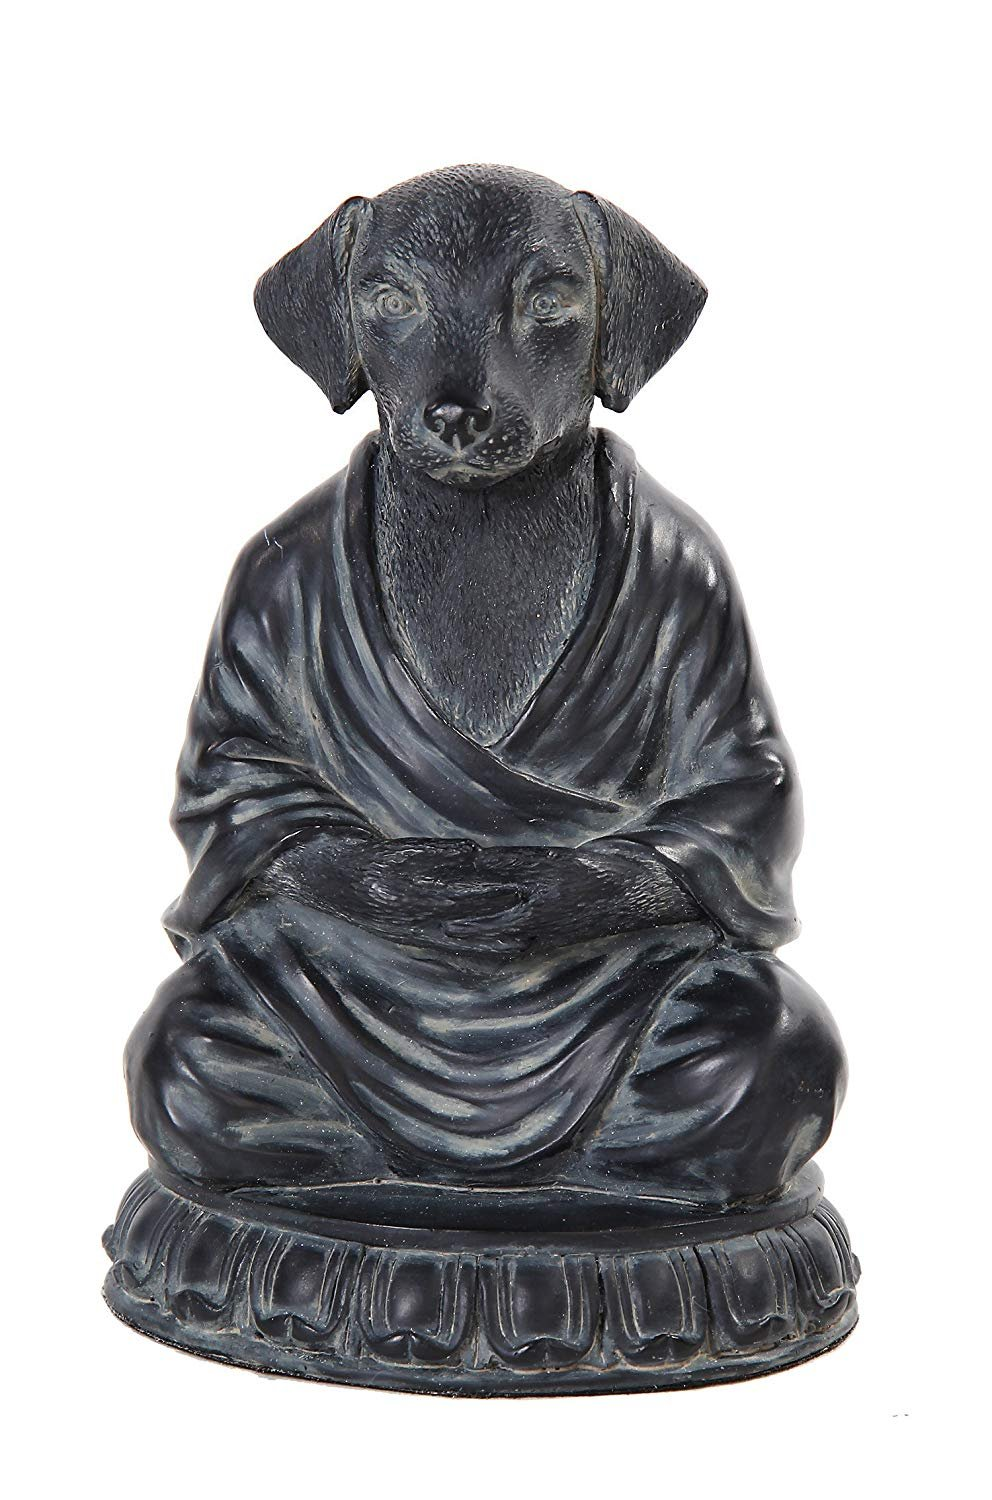 Relaxing Meditating Dog Decorative Tabletop Figurine, 6 inch